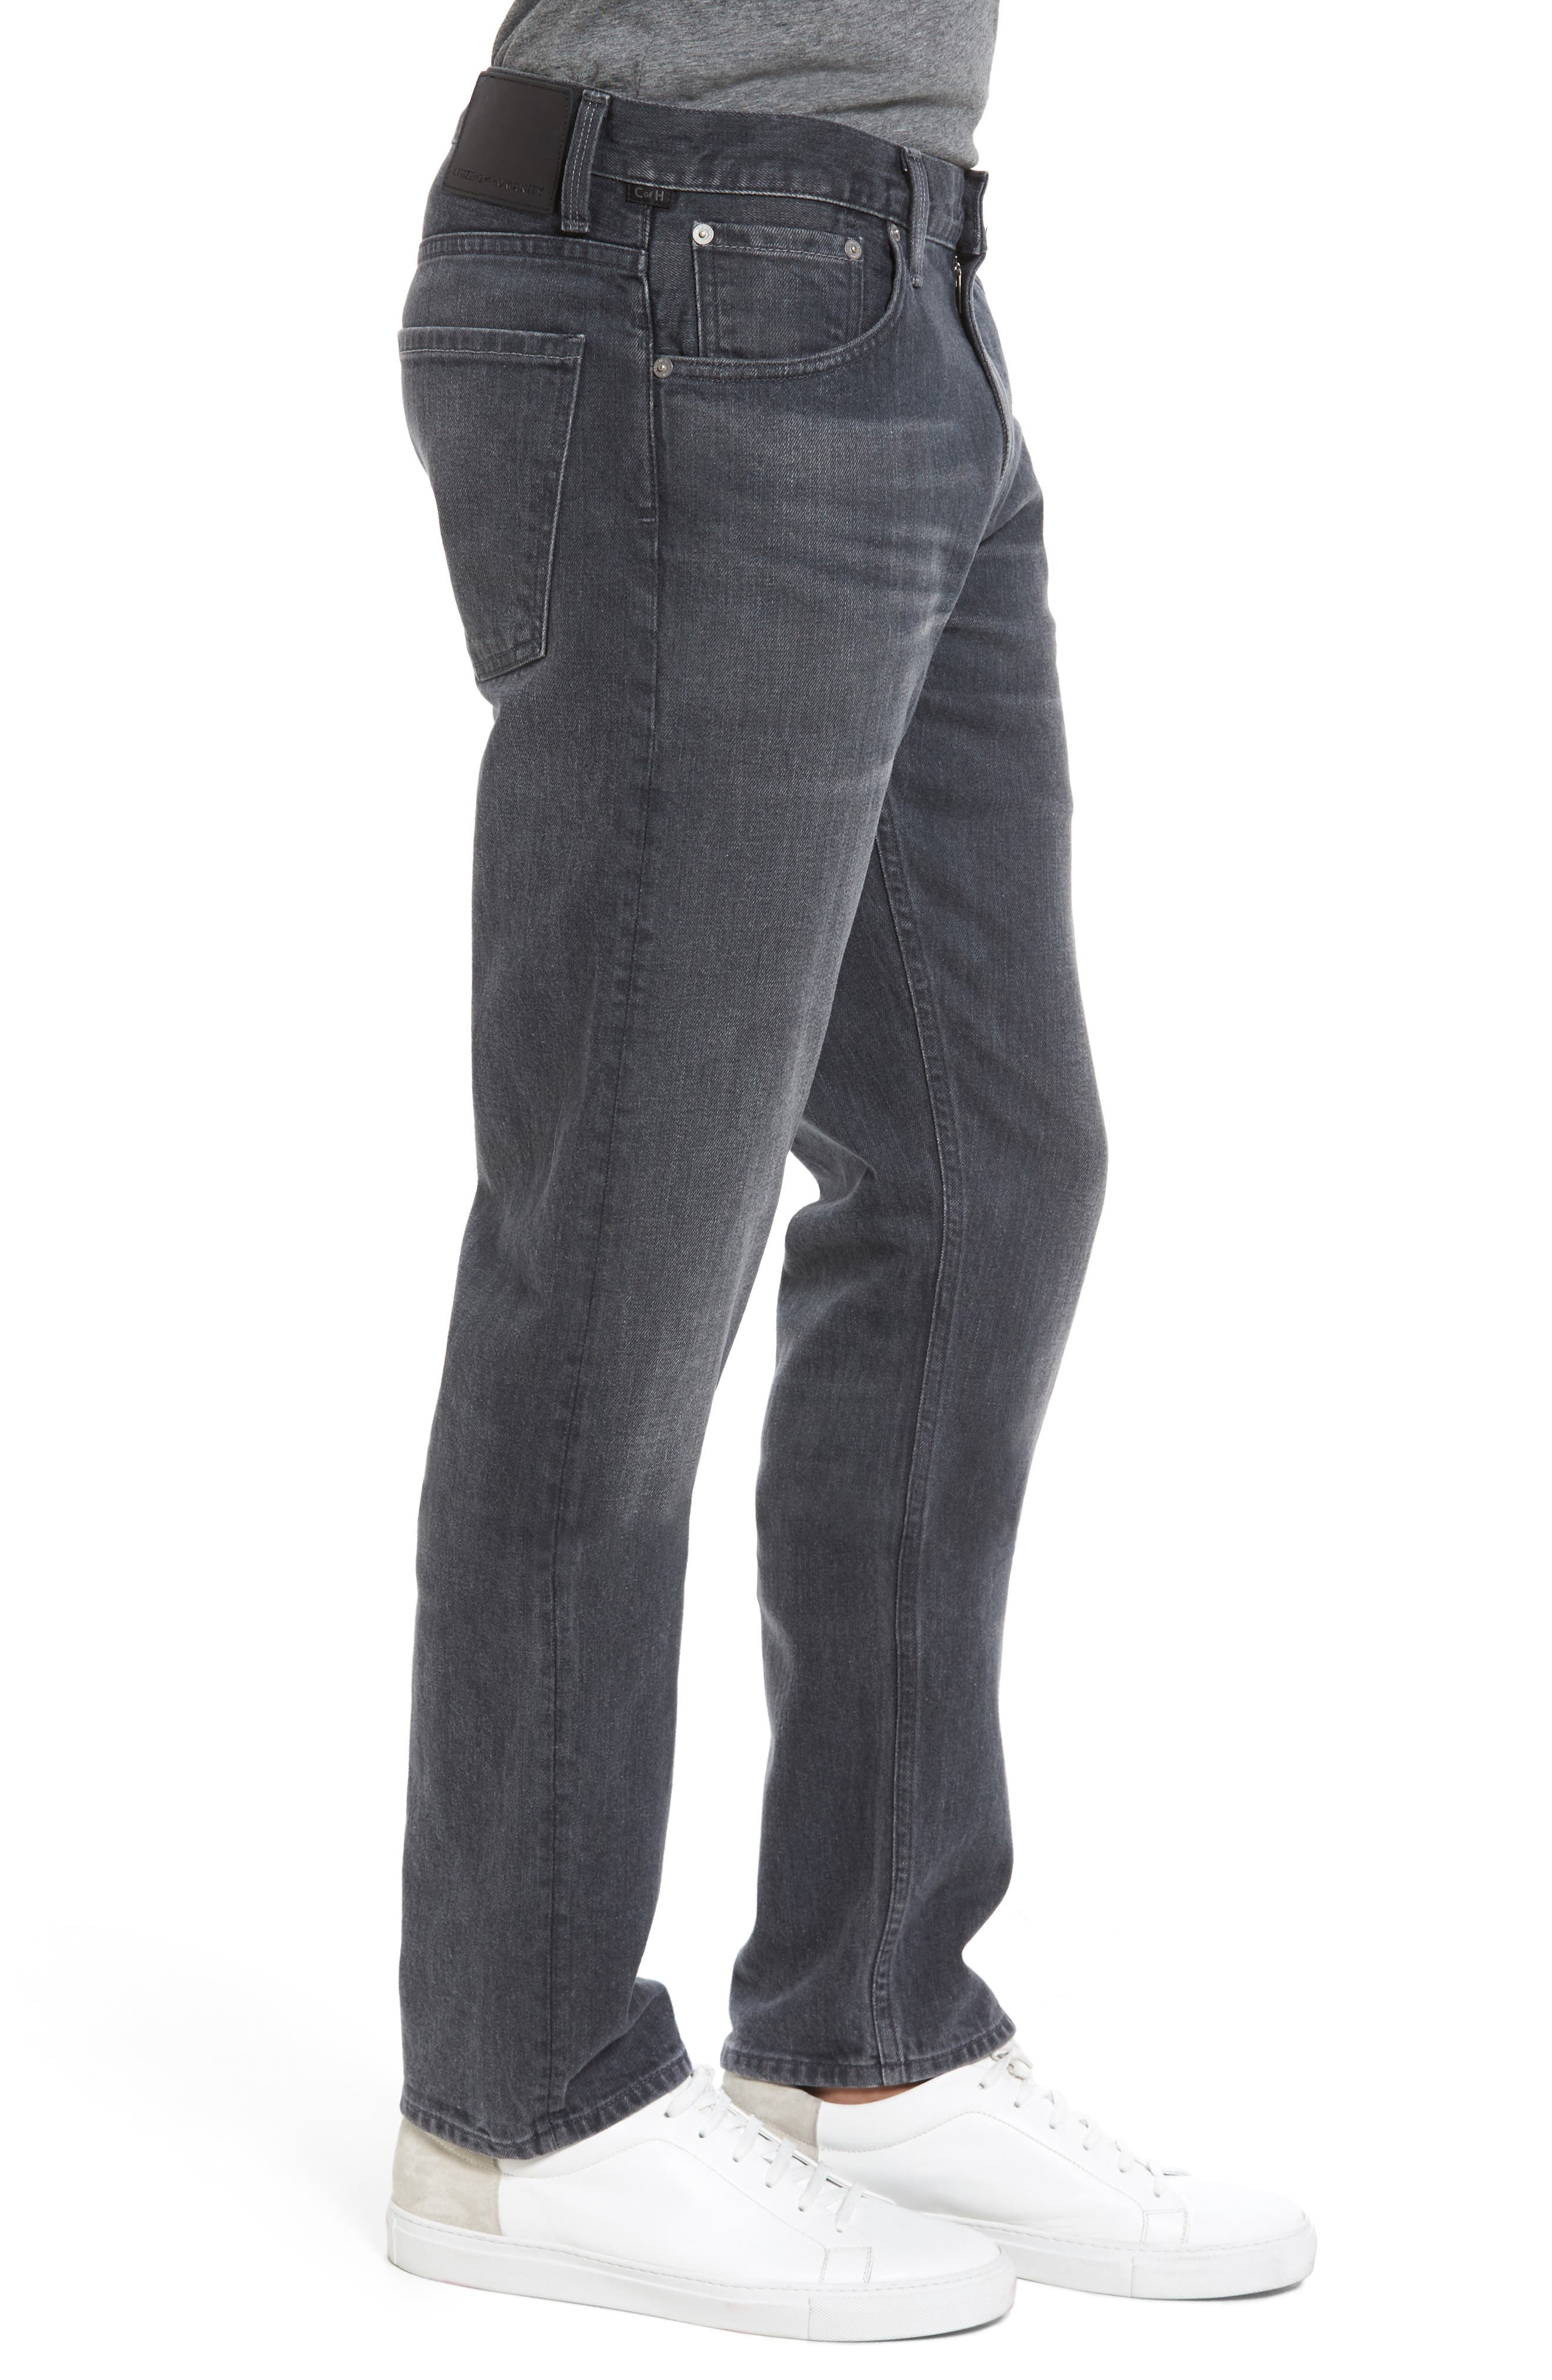 Bowery Slim Fit Jeans,                             Alternate thumbnail 3, color,                             022